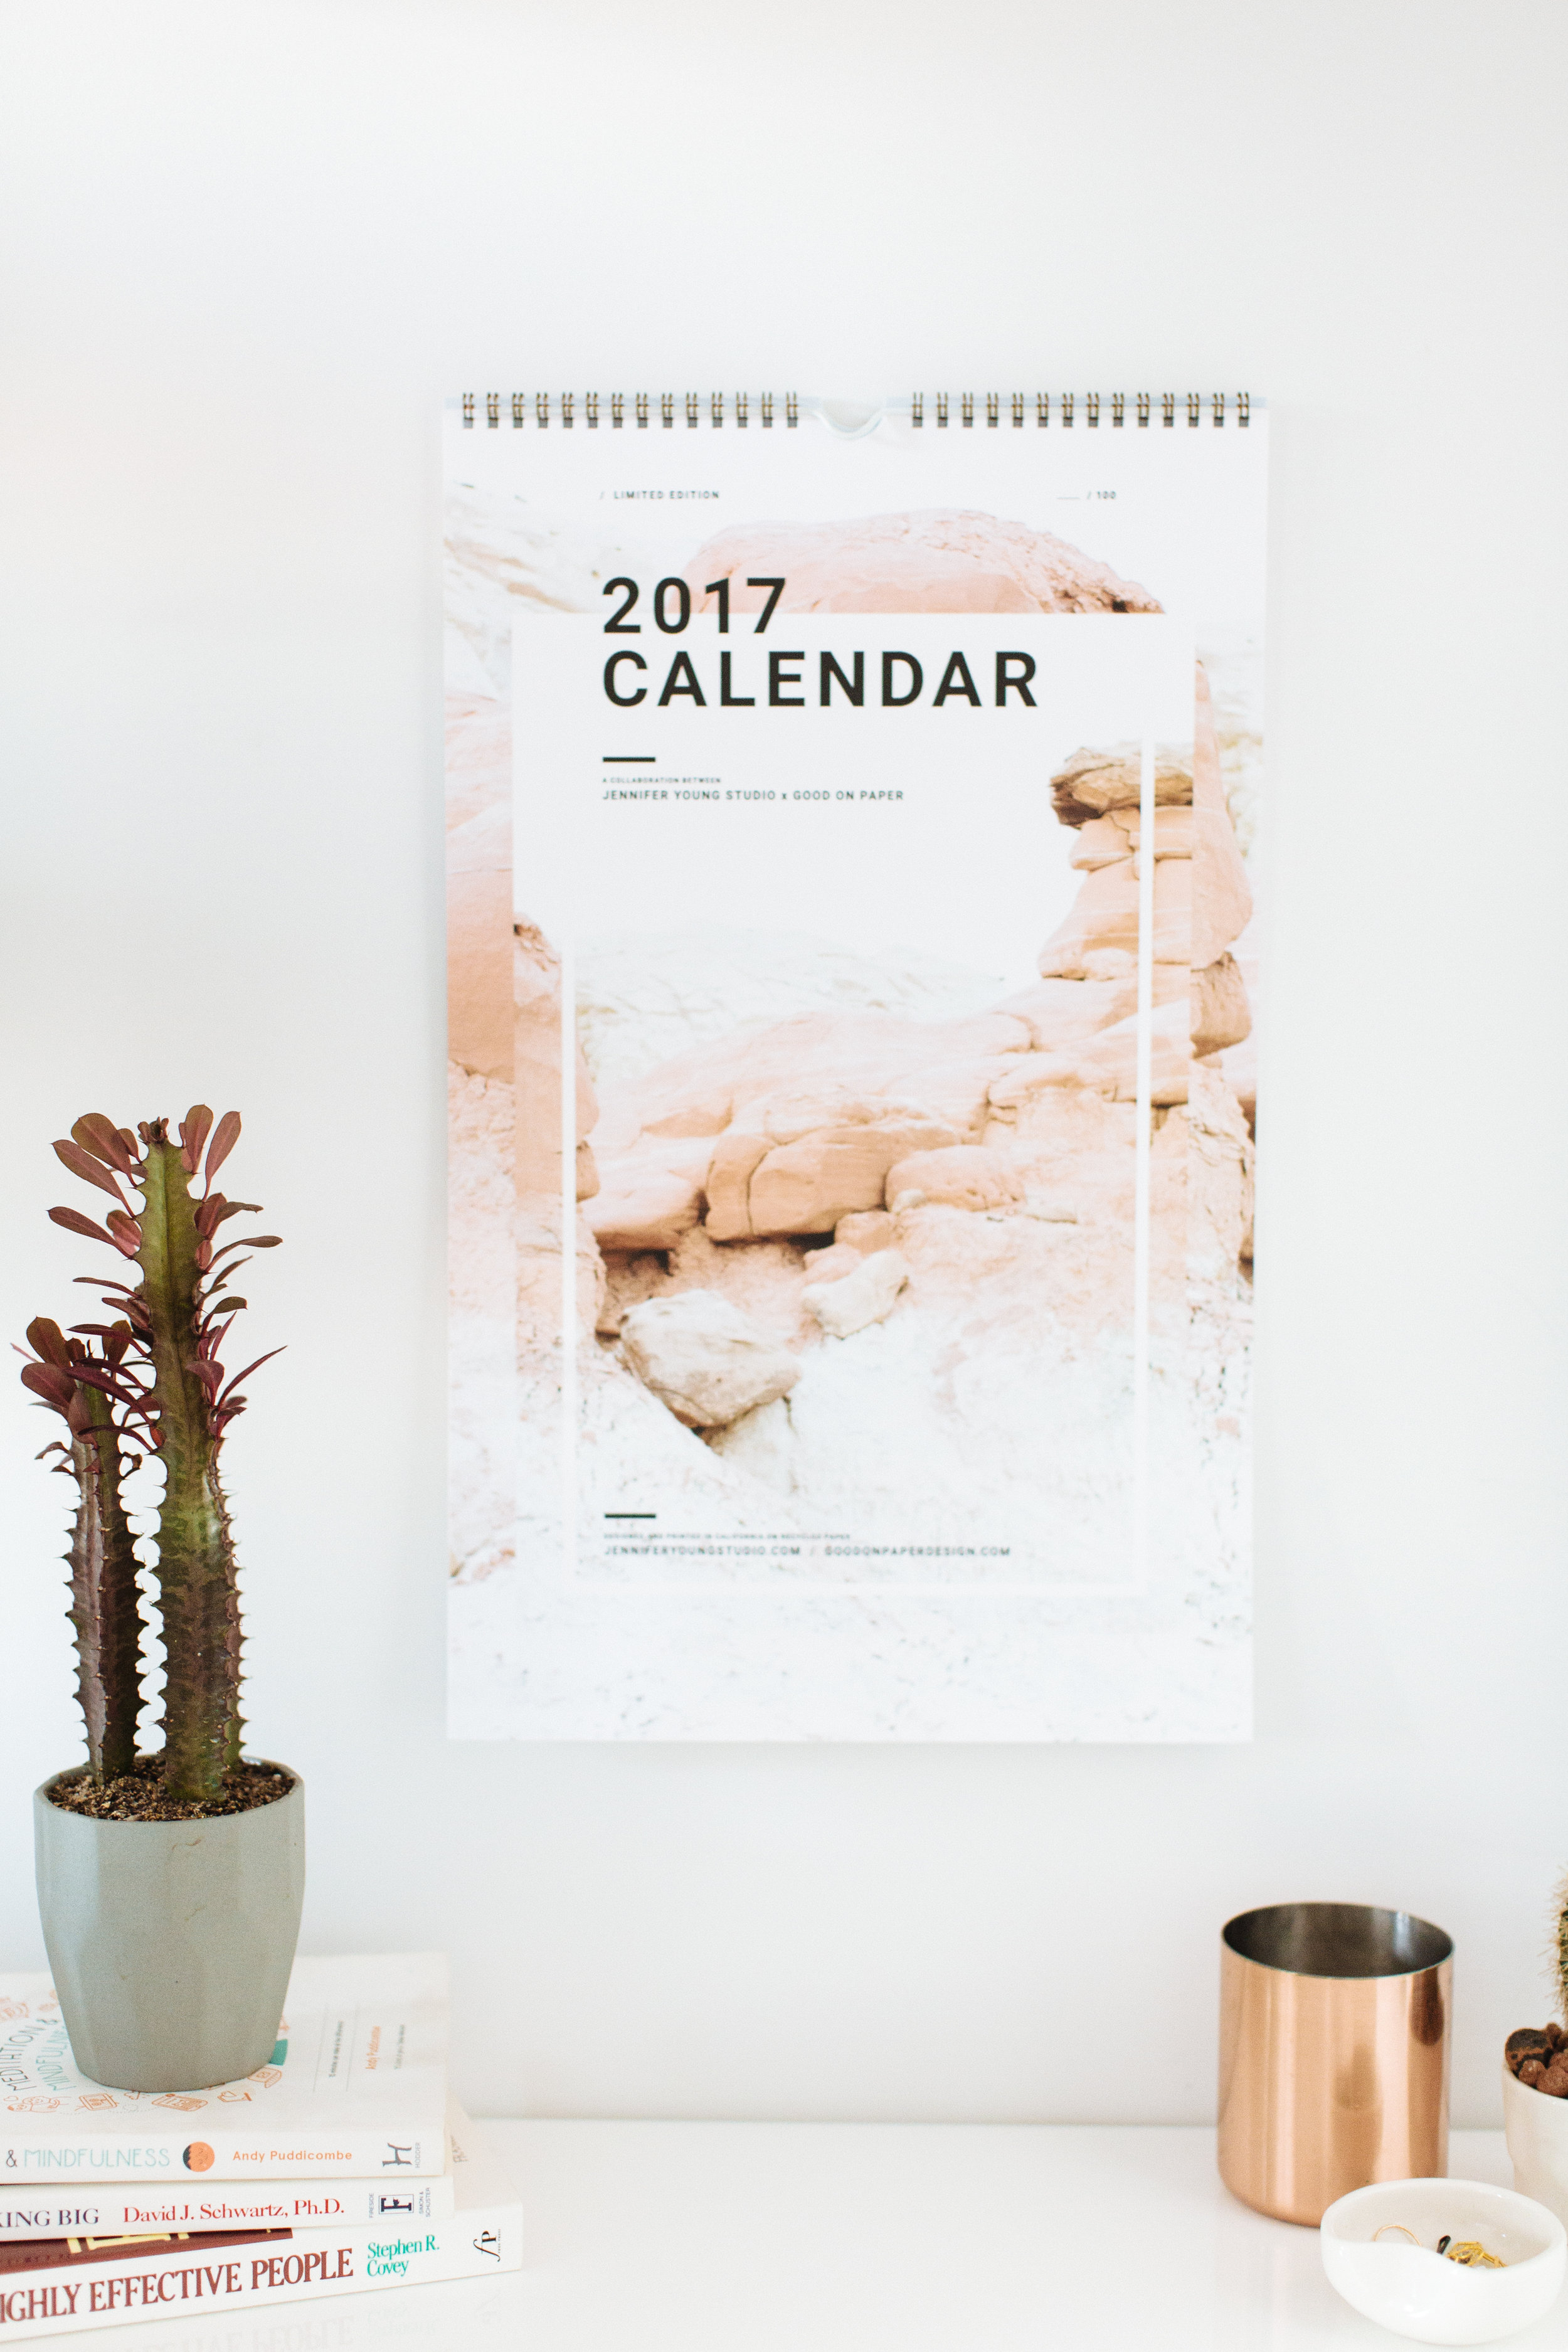 2017 Calendar and Holiday Cards Now Available in the Shop  /  www.goodonpaperdesign.com/blog/2016/11/17/2017-calendar-and-holiday-cards-now-available-in-the-shop  /  @good_on_paper